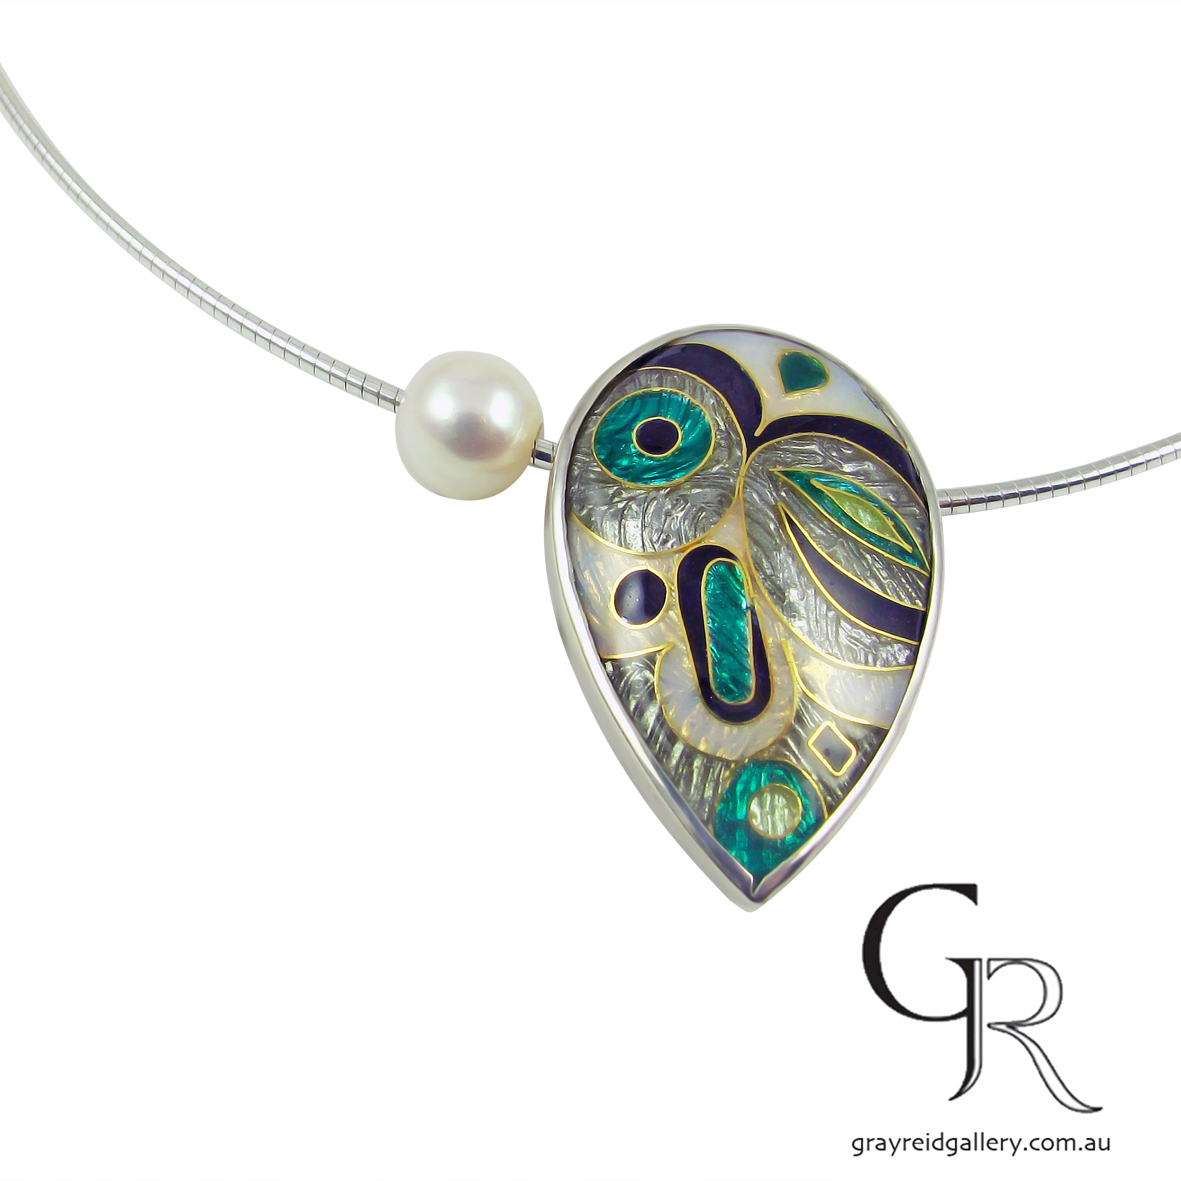 Enamel Pendant by Debbie Sheezel